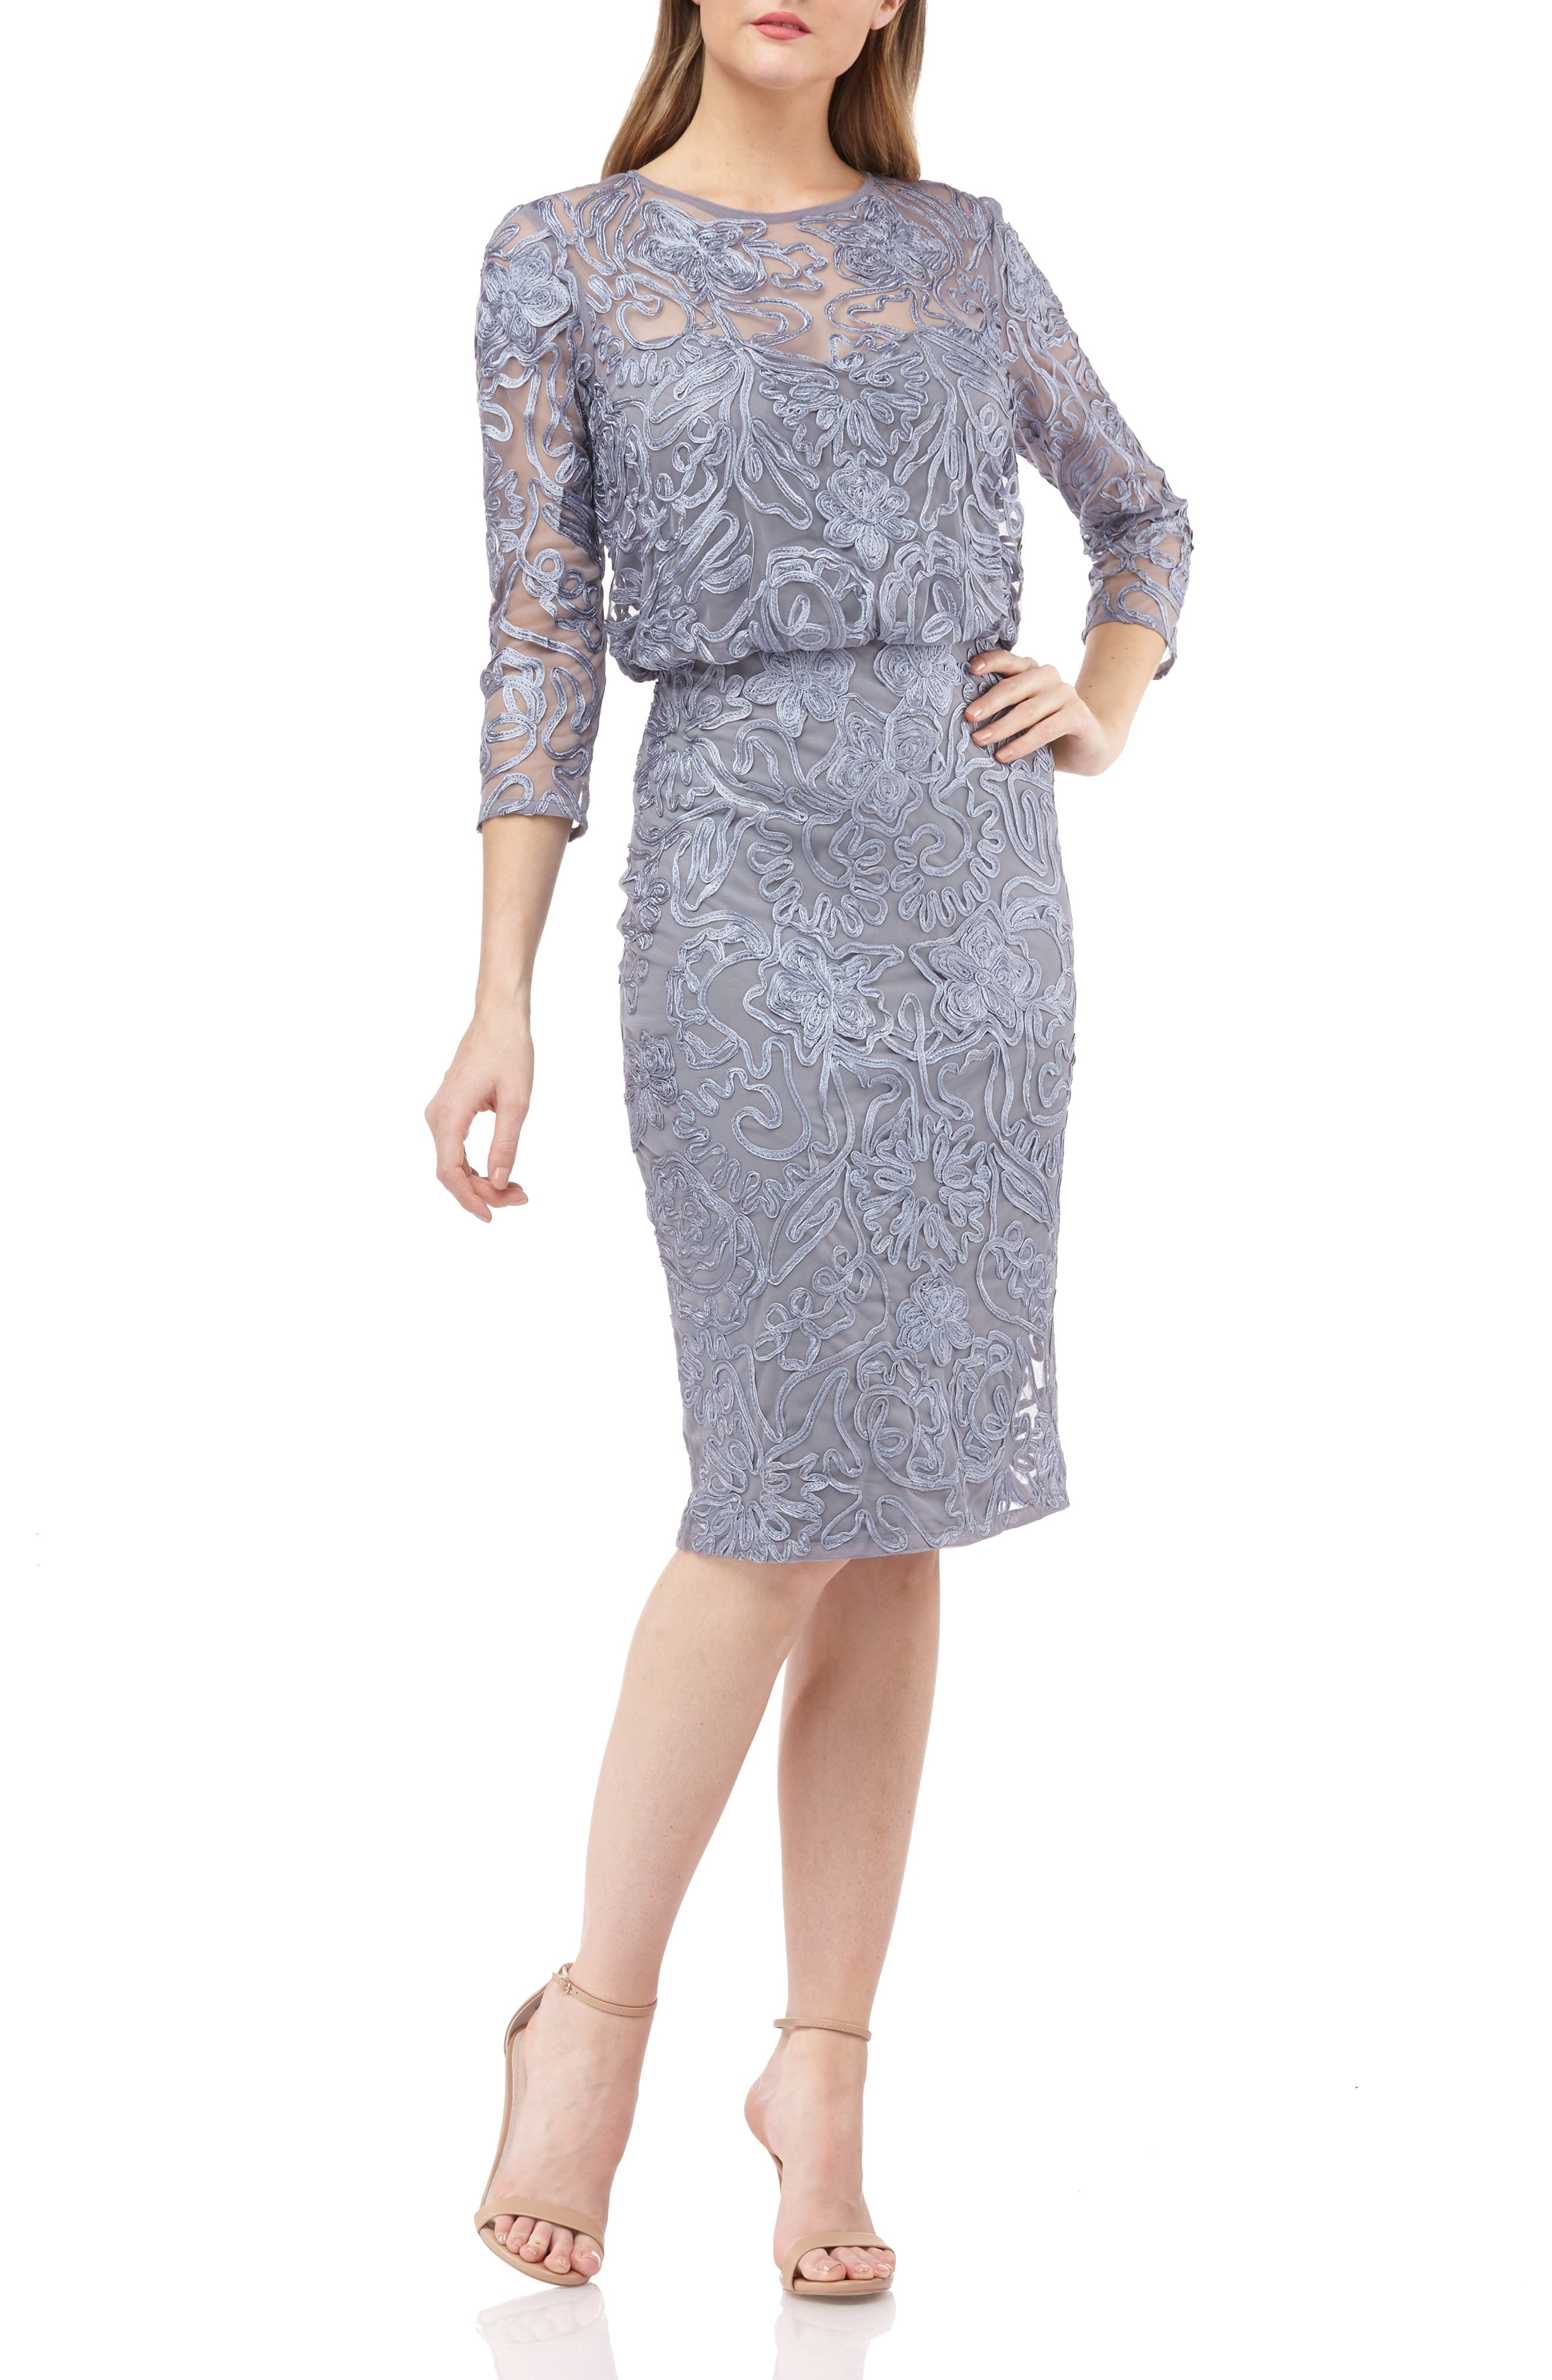 Js Collections Soutache Embroidered Blouson Dress, Grey